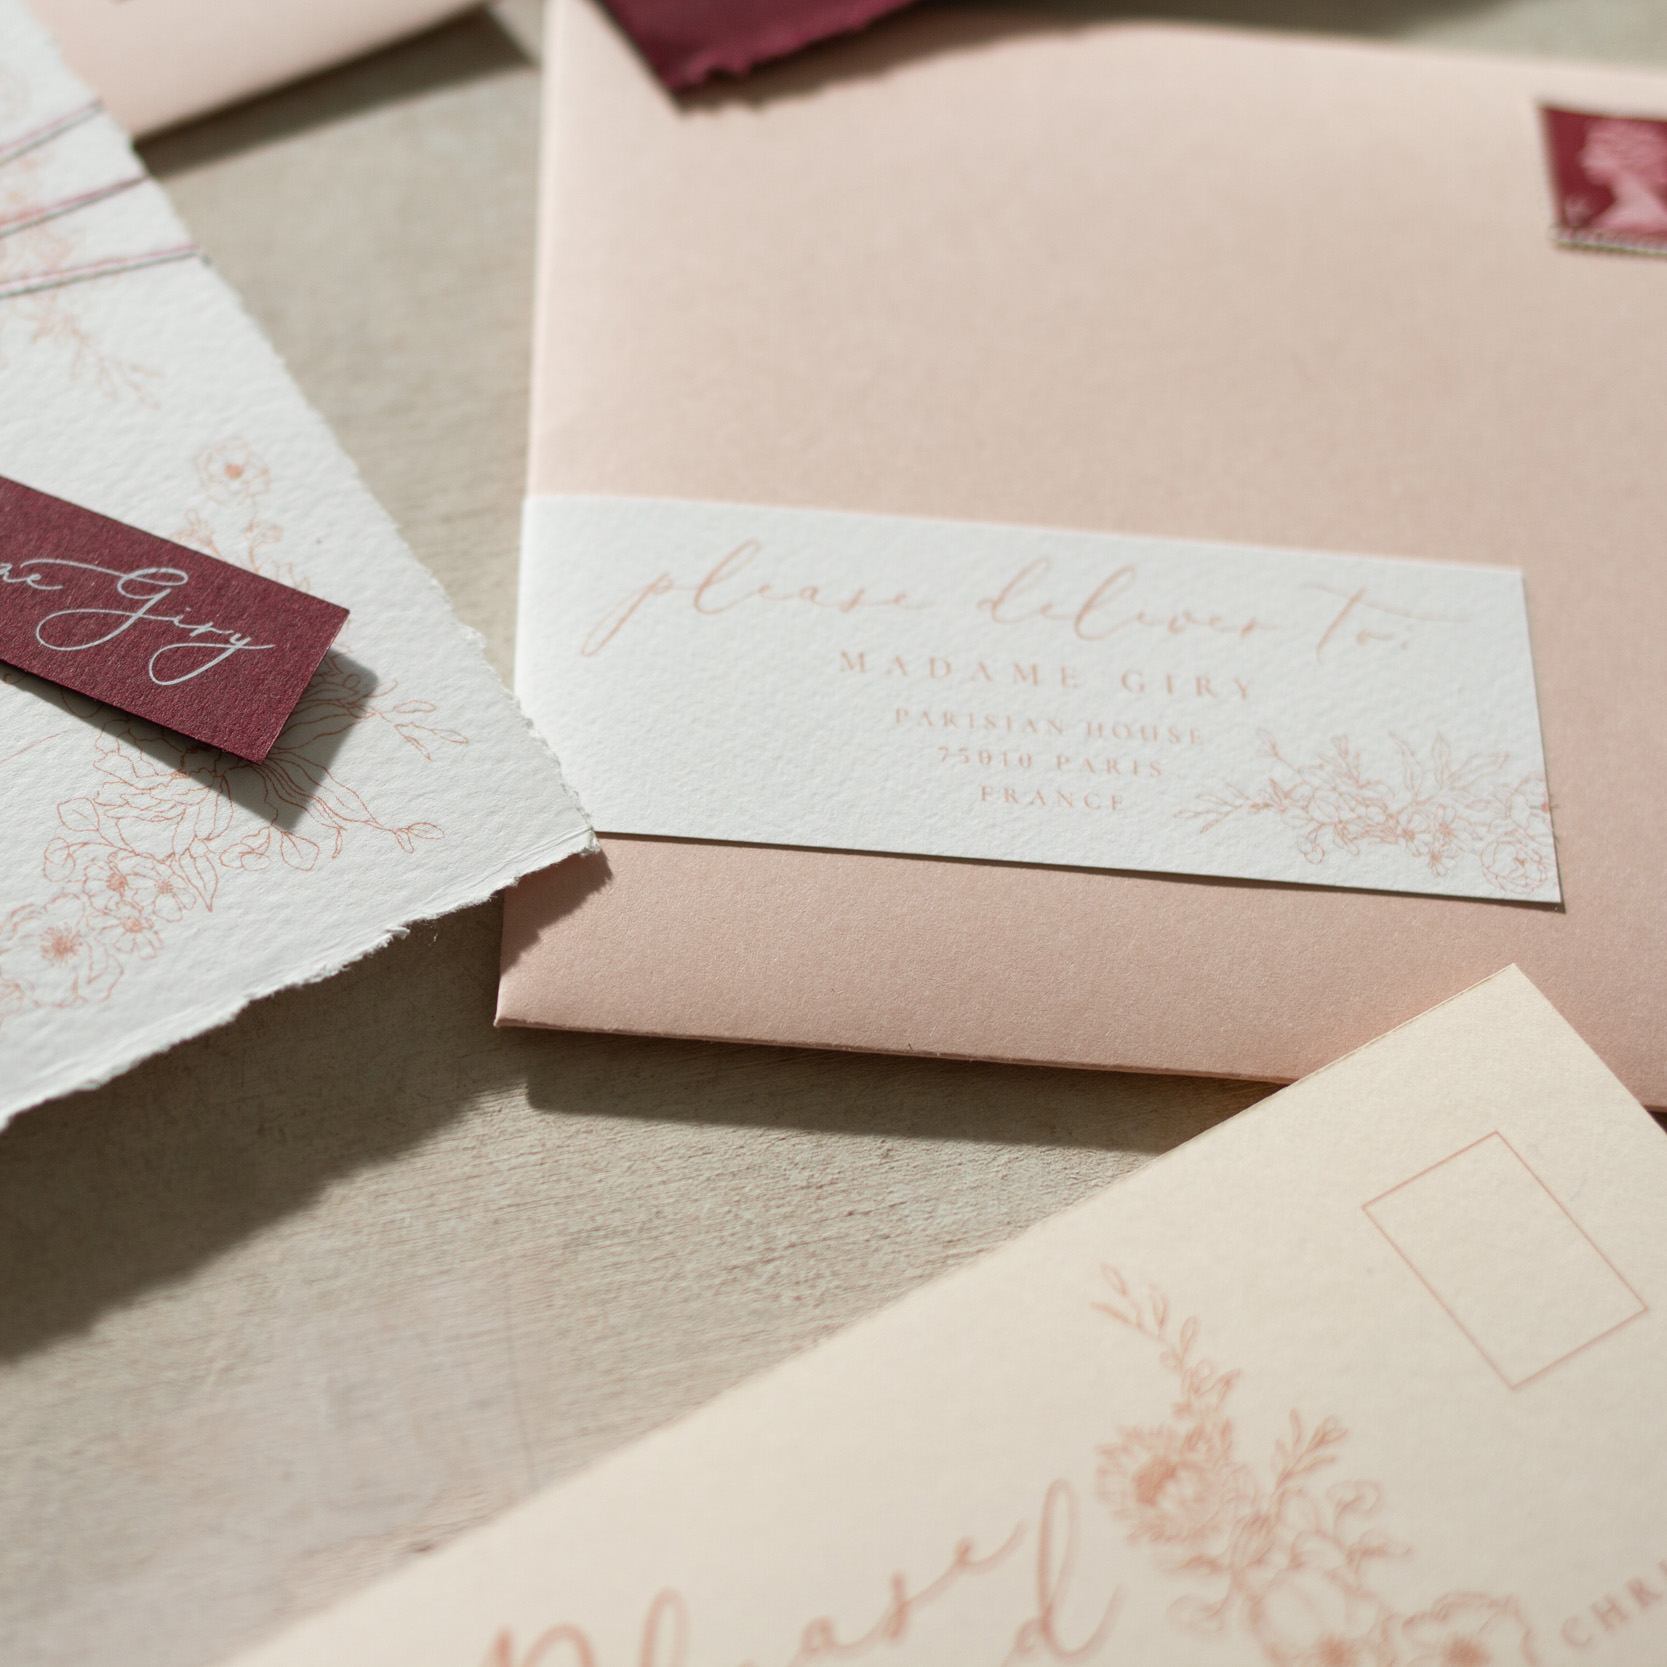 Blush Petals Luxury Fine Art Wedding Stationery with Illustrate Floral Details - www.pinglepie.com.jpg